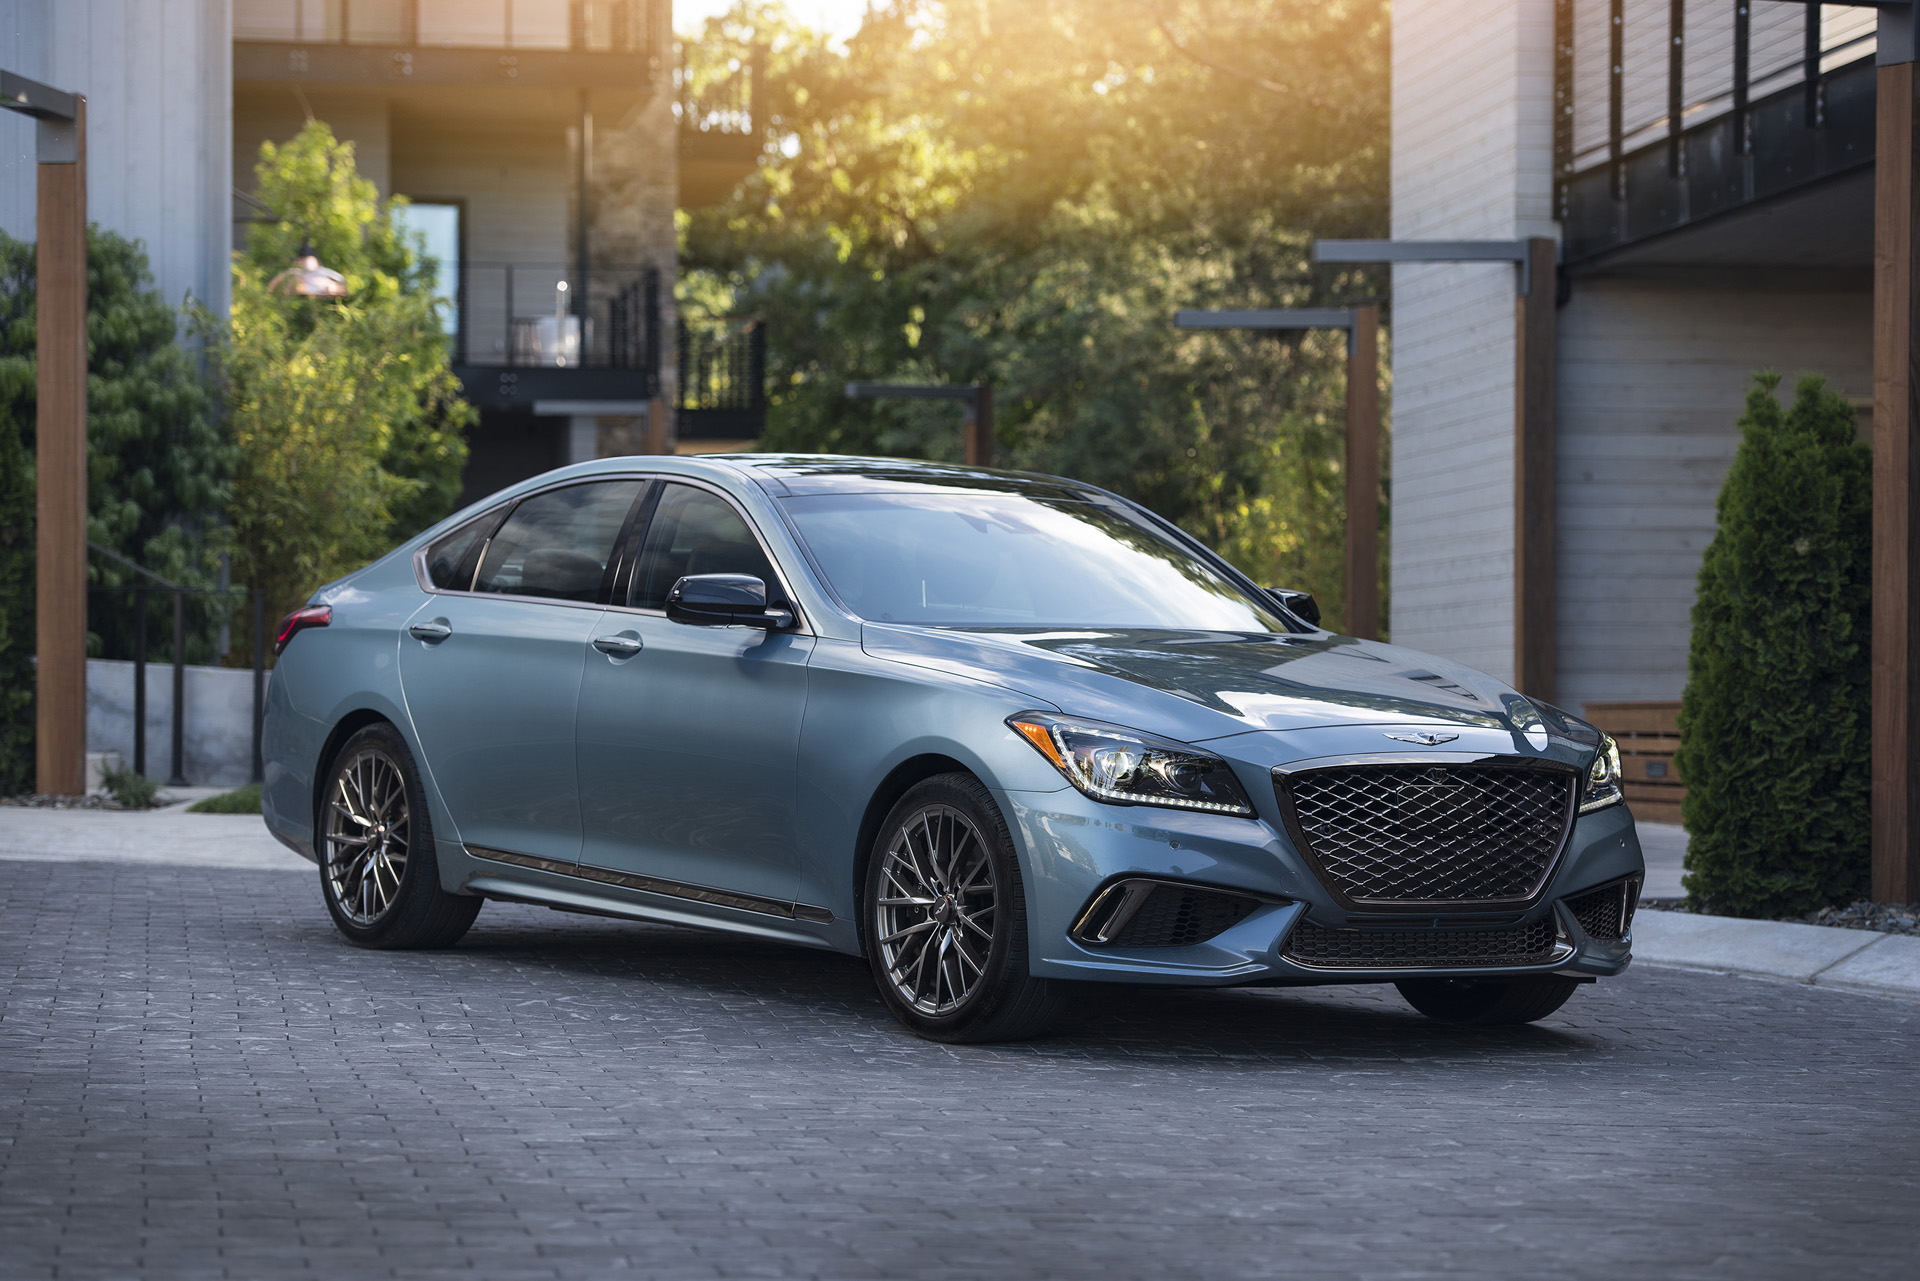 2018 genesis g80 sport first drive review it 39 s not all in the name. Black Bedroom Furniture Sets. Home Design Ideas